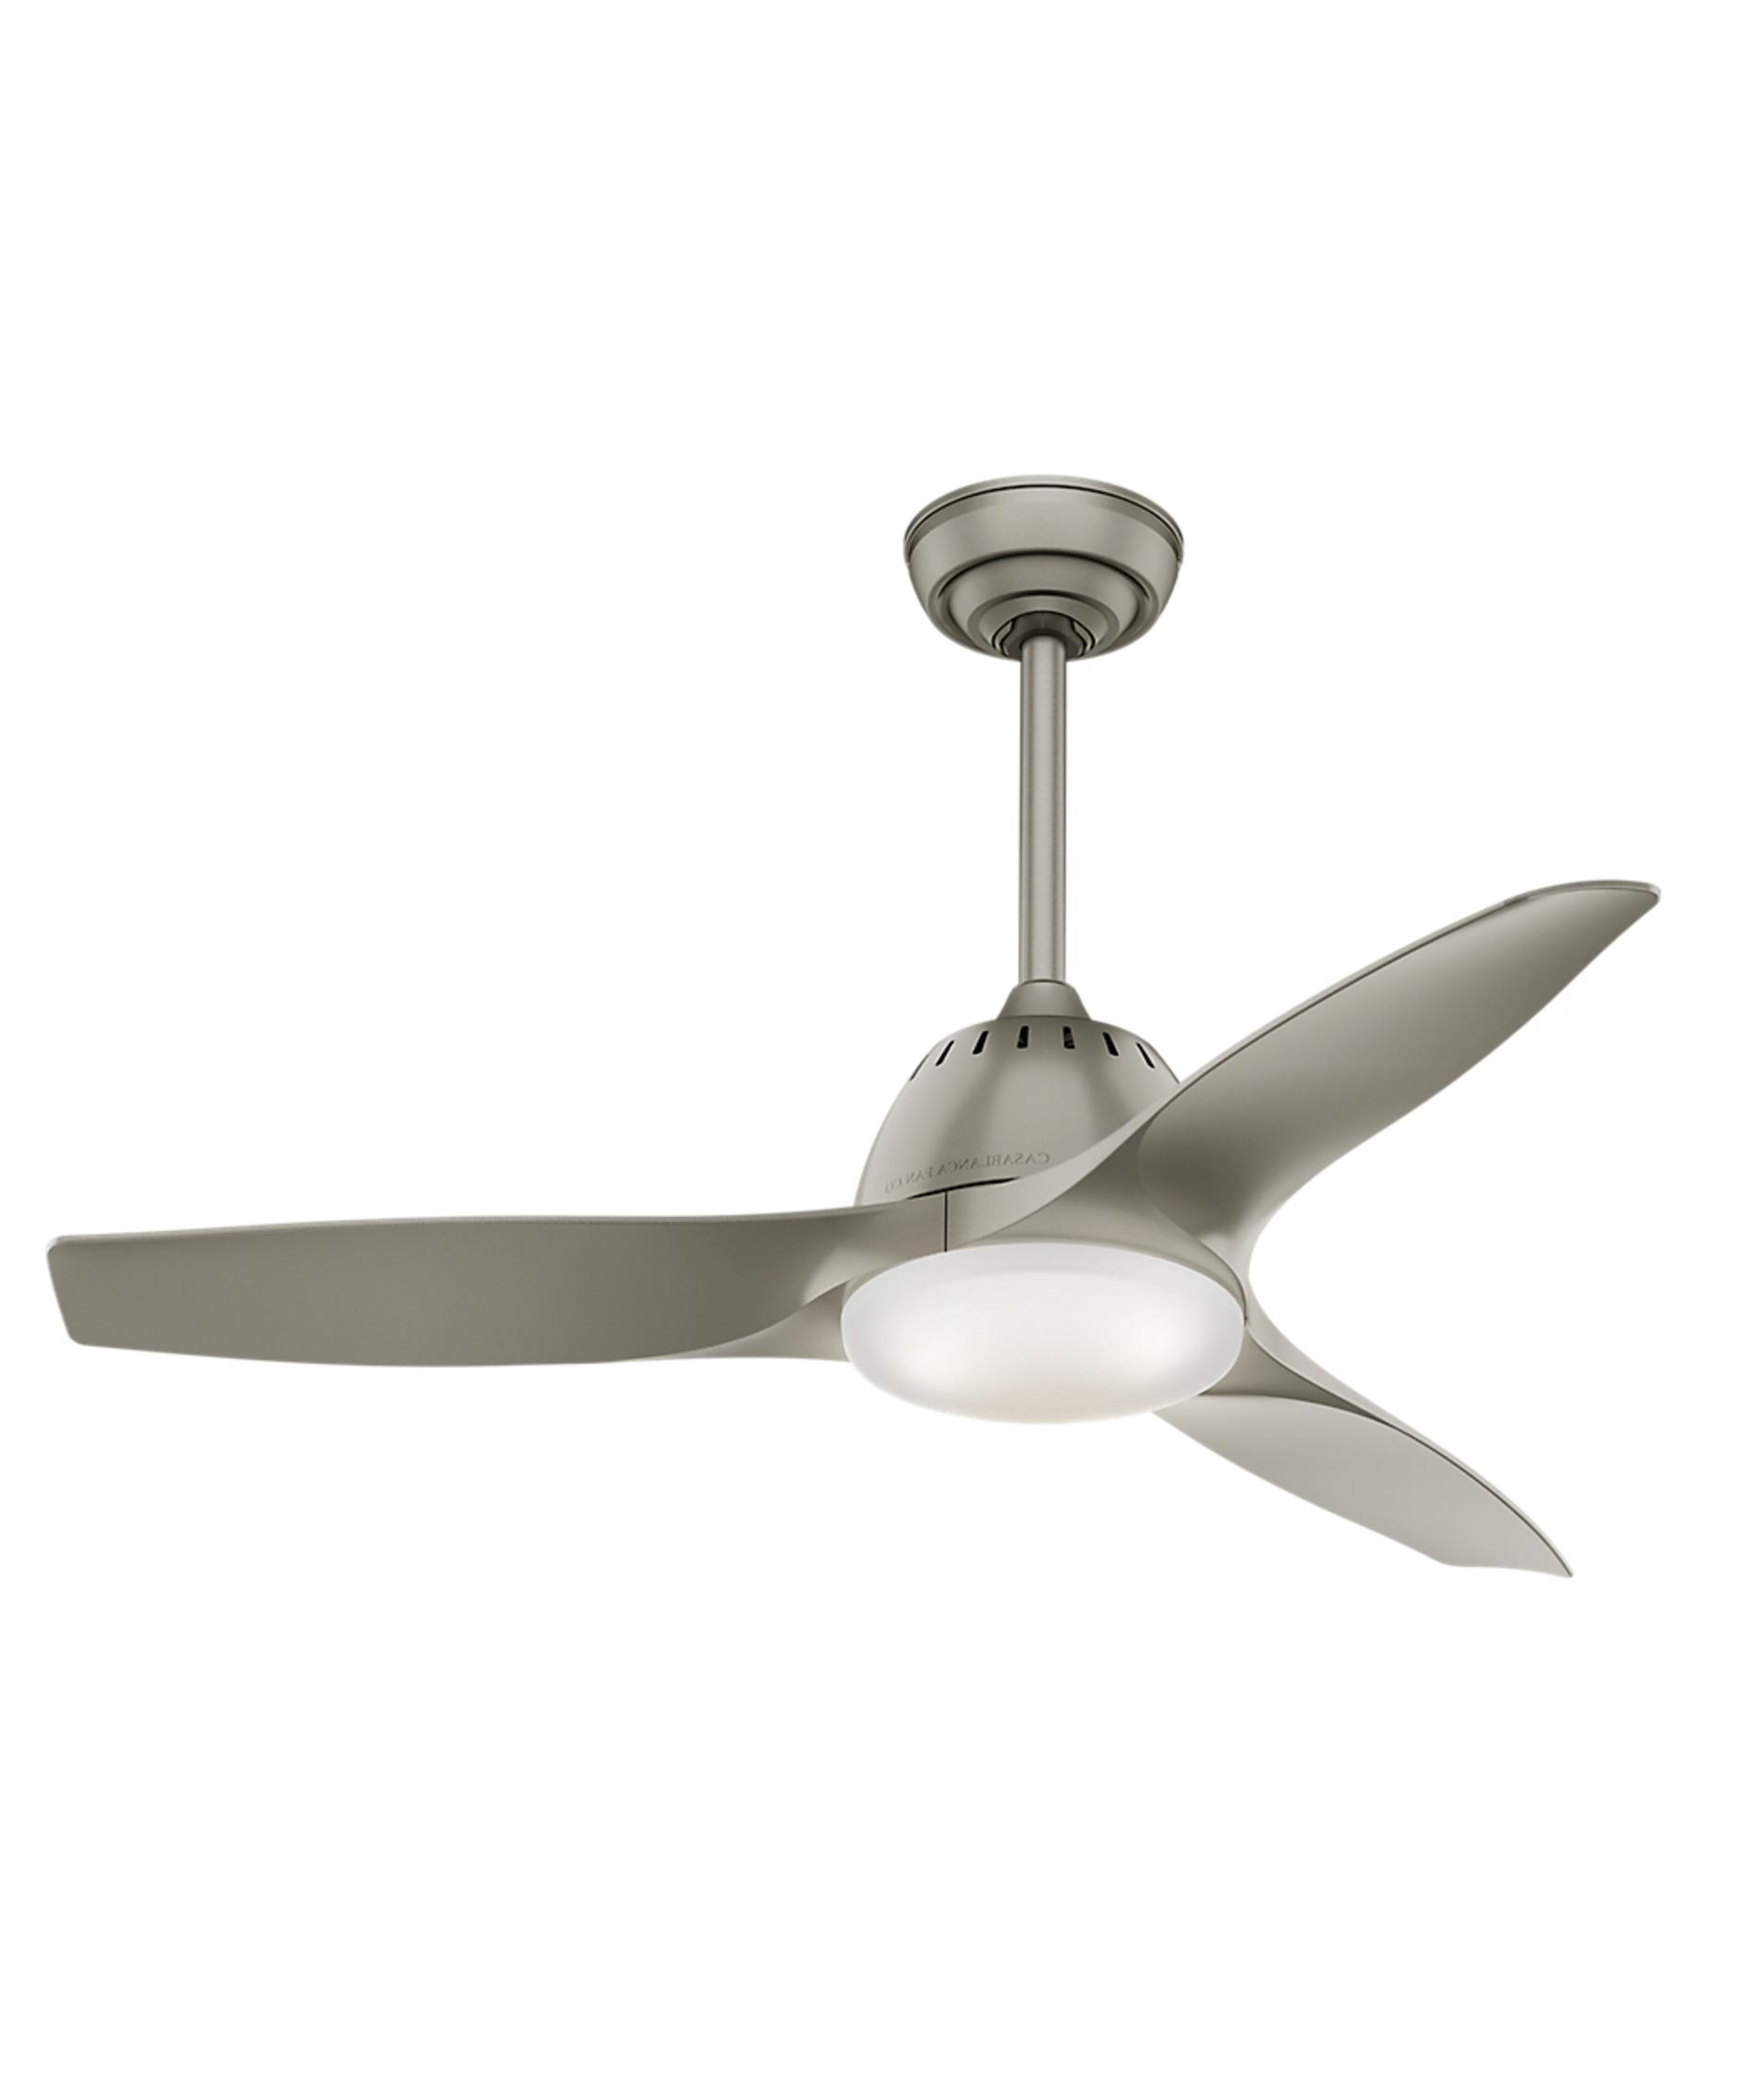 Capitol Lighting Pertaining To Casablanca Outdoor Ceiling Fans With Lights (View 11 of 20)